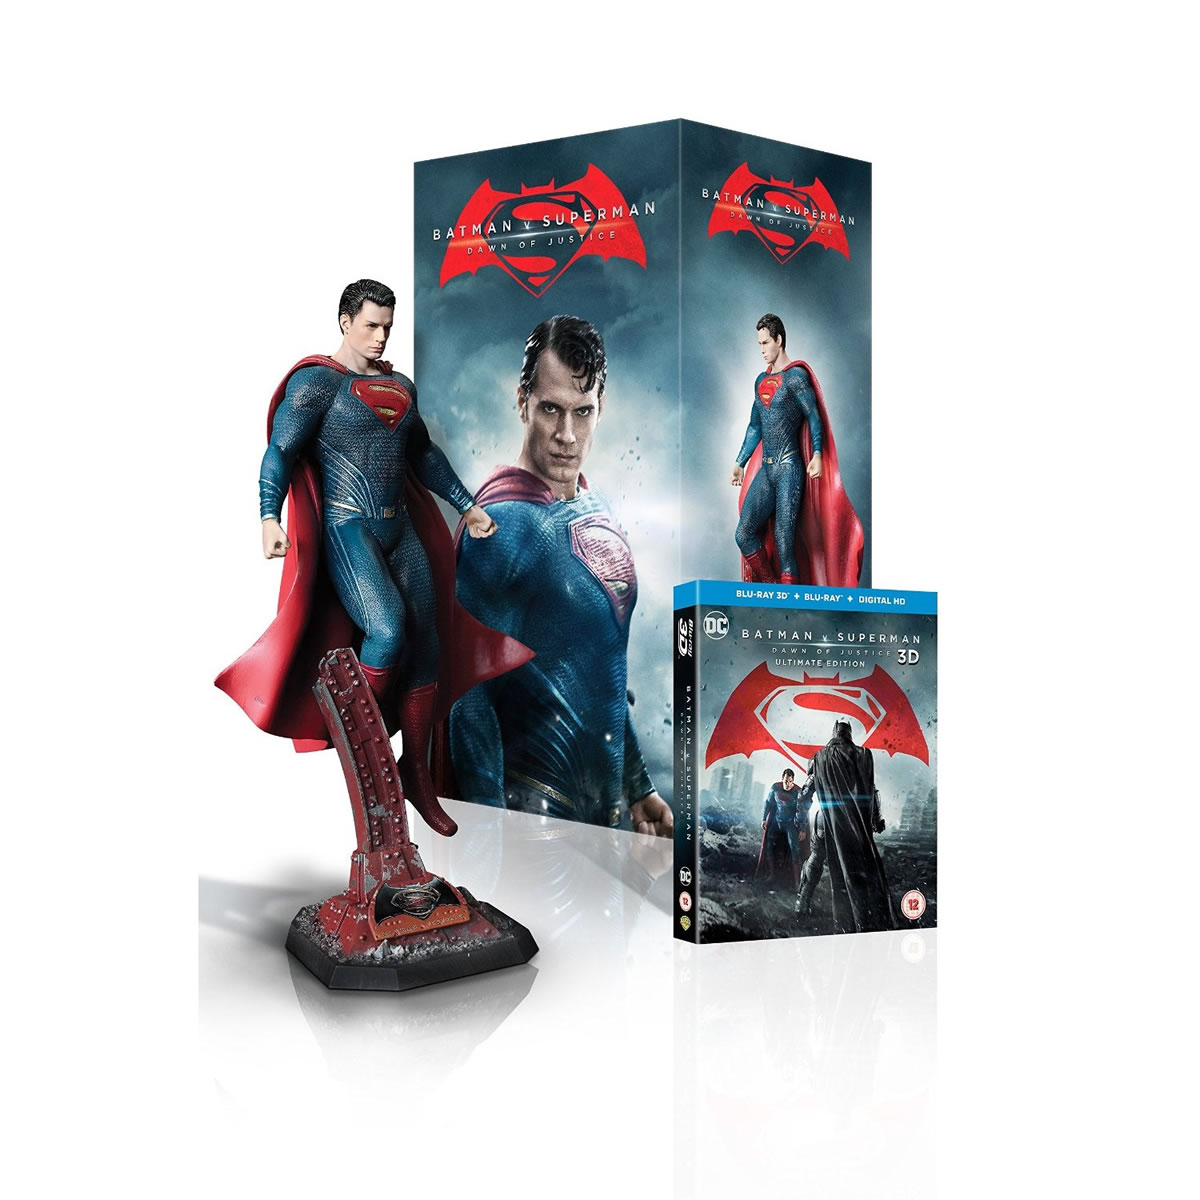 BATMAN V SUPERMAN: DAWN OF JUSTICE 3D Extended Unrated Cut ULTIMATE EDITION - BATMAN V SUPERMAN: � ���� ��� ����������� 3D Extended Unrated Cut ULTIMATE EDITION + Superman Statue Limited Collector's Edition (BLU-RAY 3D + BLU-RAY)